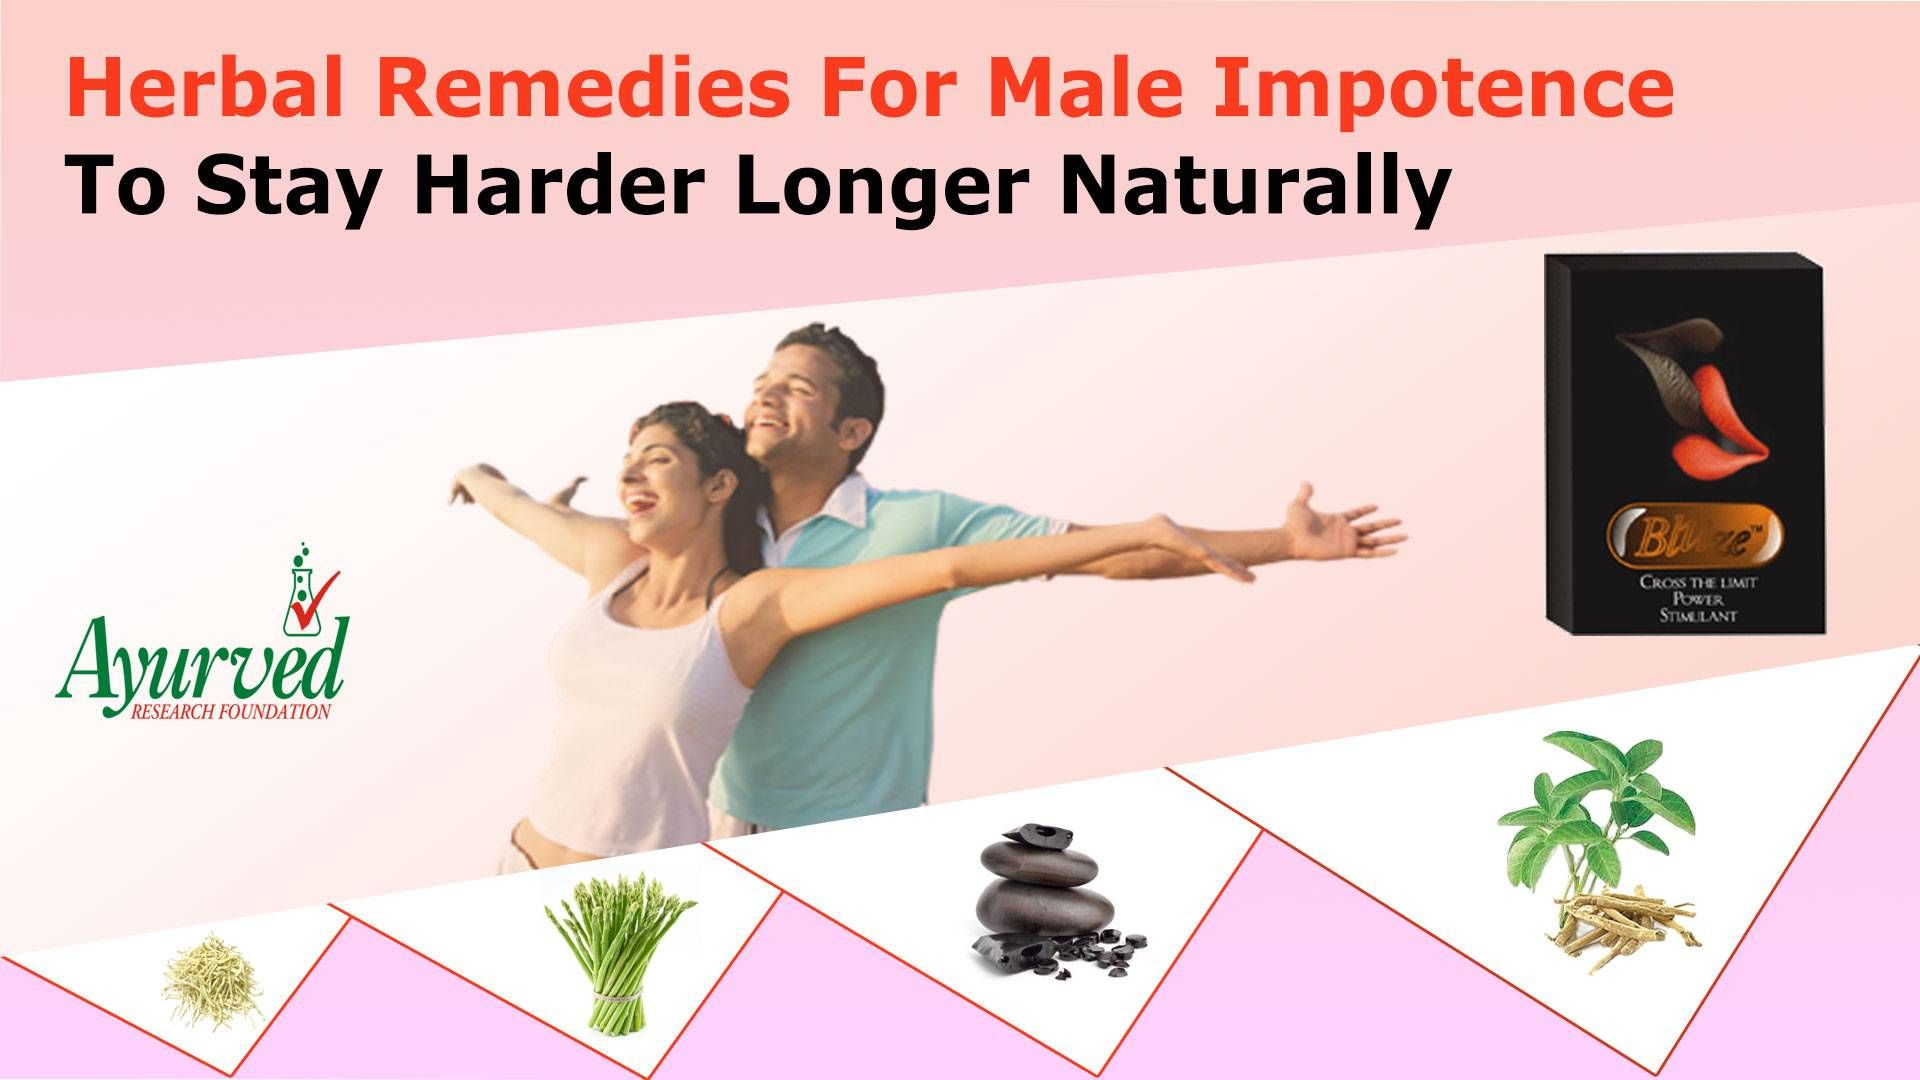 How to stay harder longer